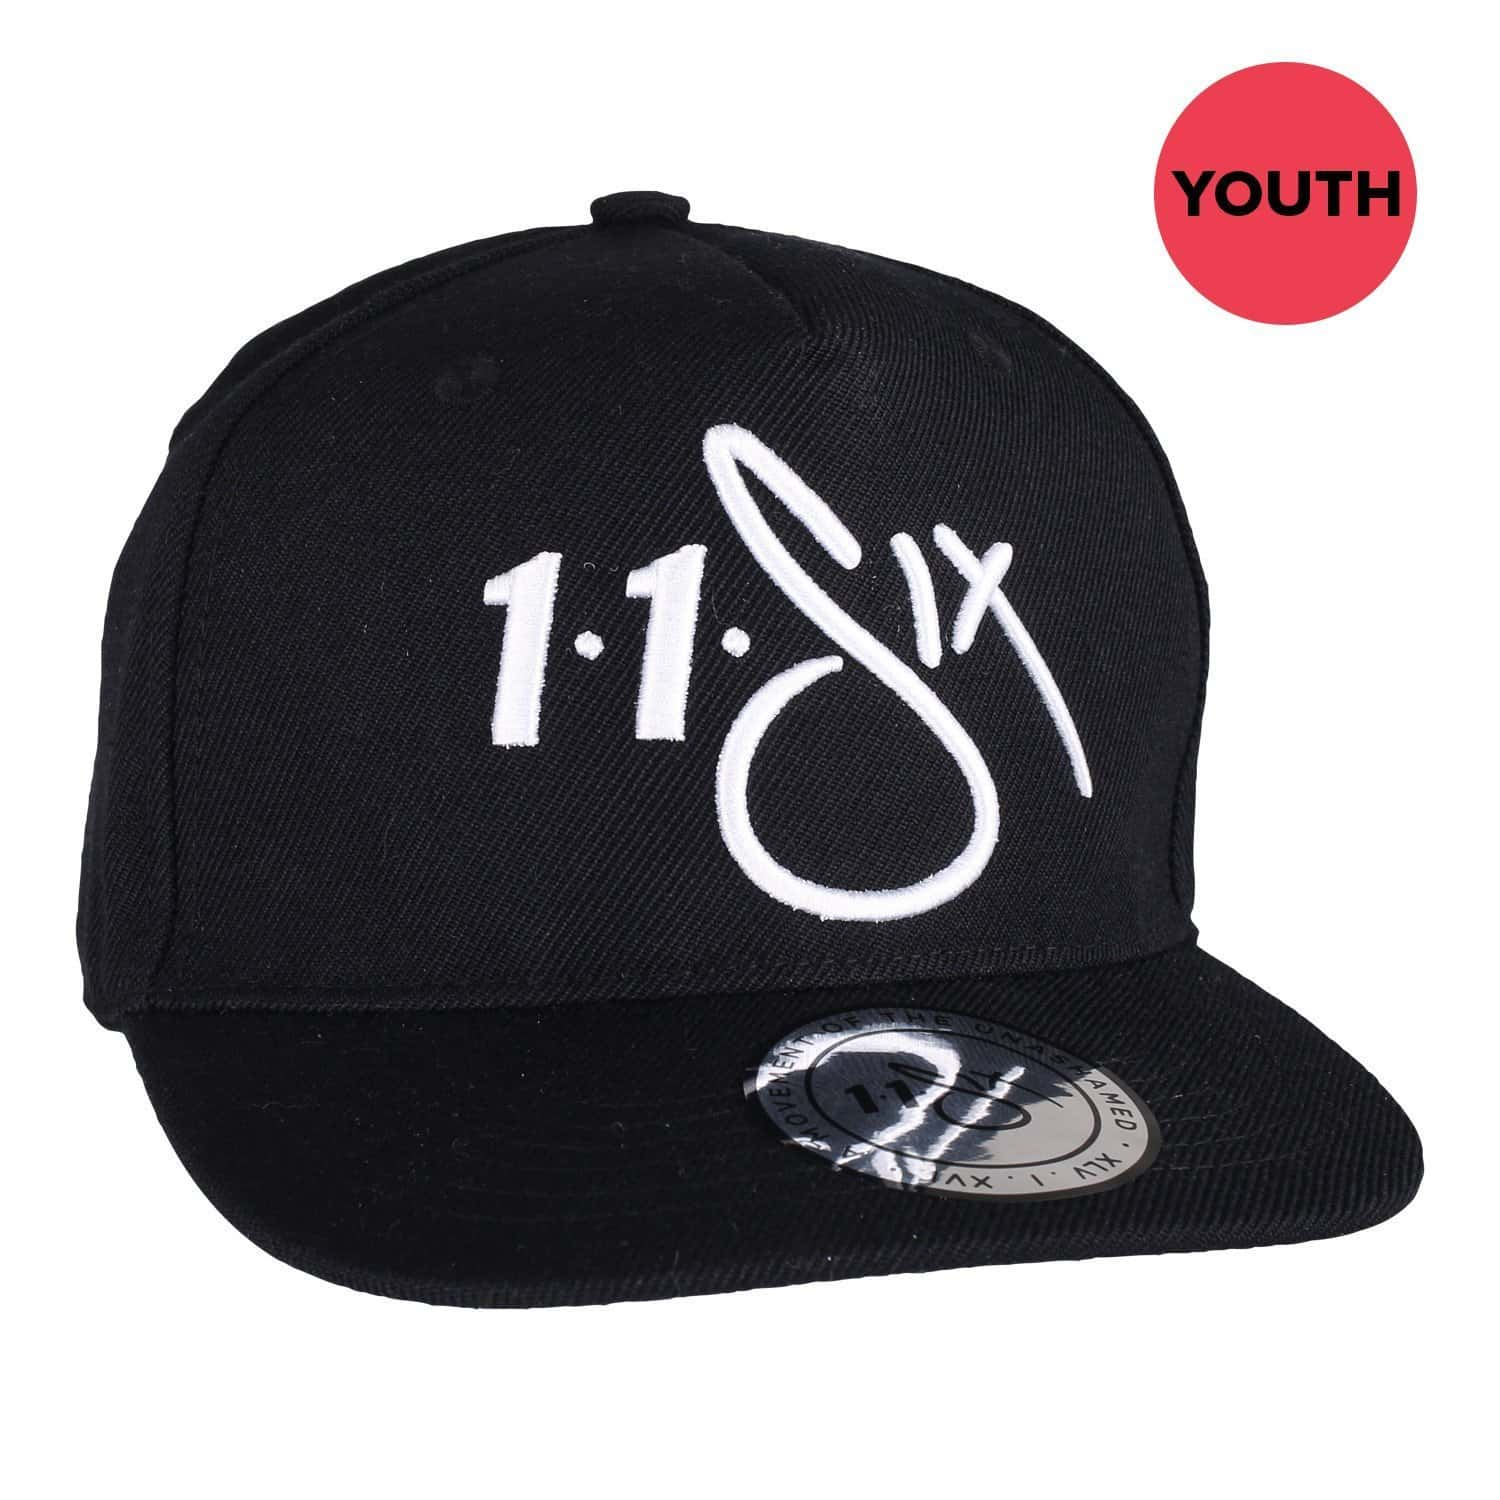 116 Youth 'Red Label' Snapback